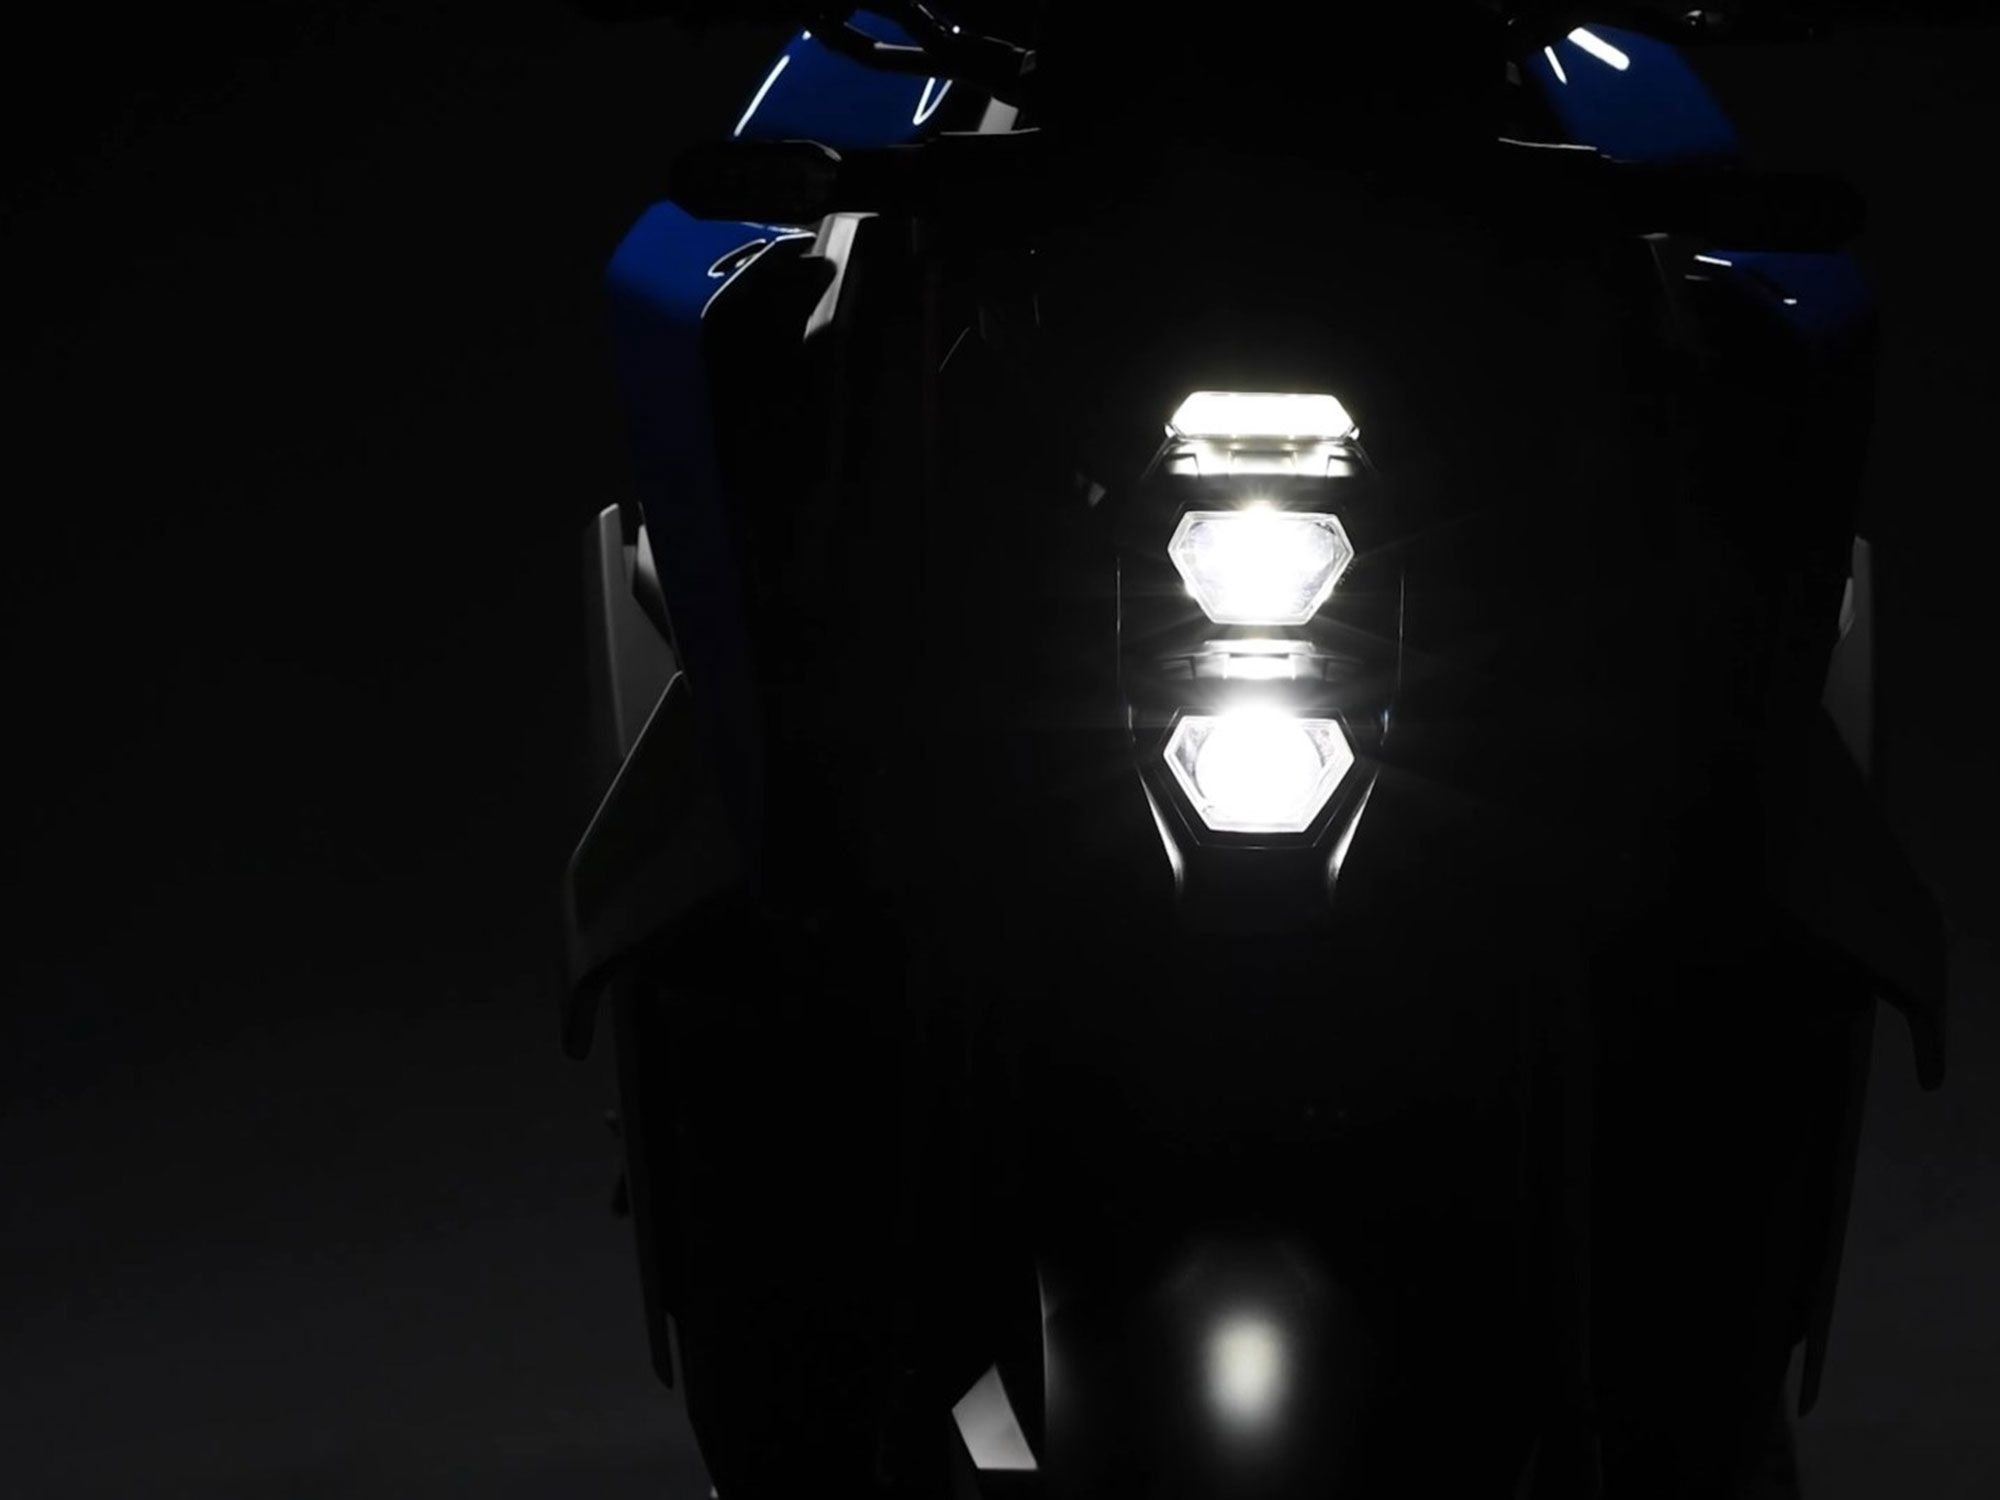 Suzuki's new teaser for its upcoming GSX-S1000 model reveals more modern, triple stacked LEDs leading the way.